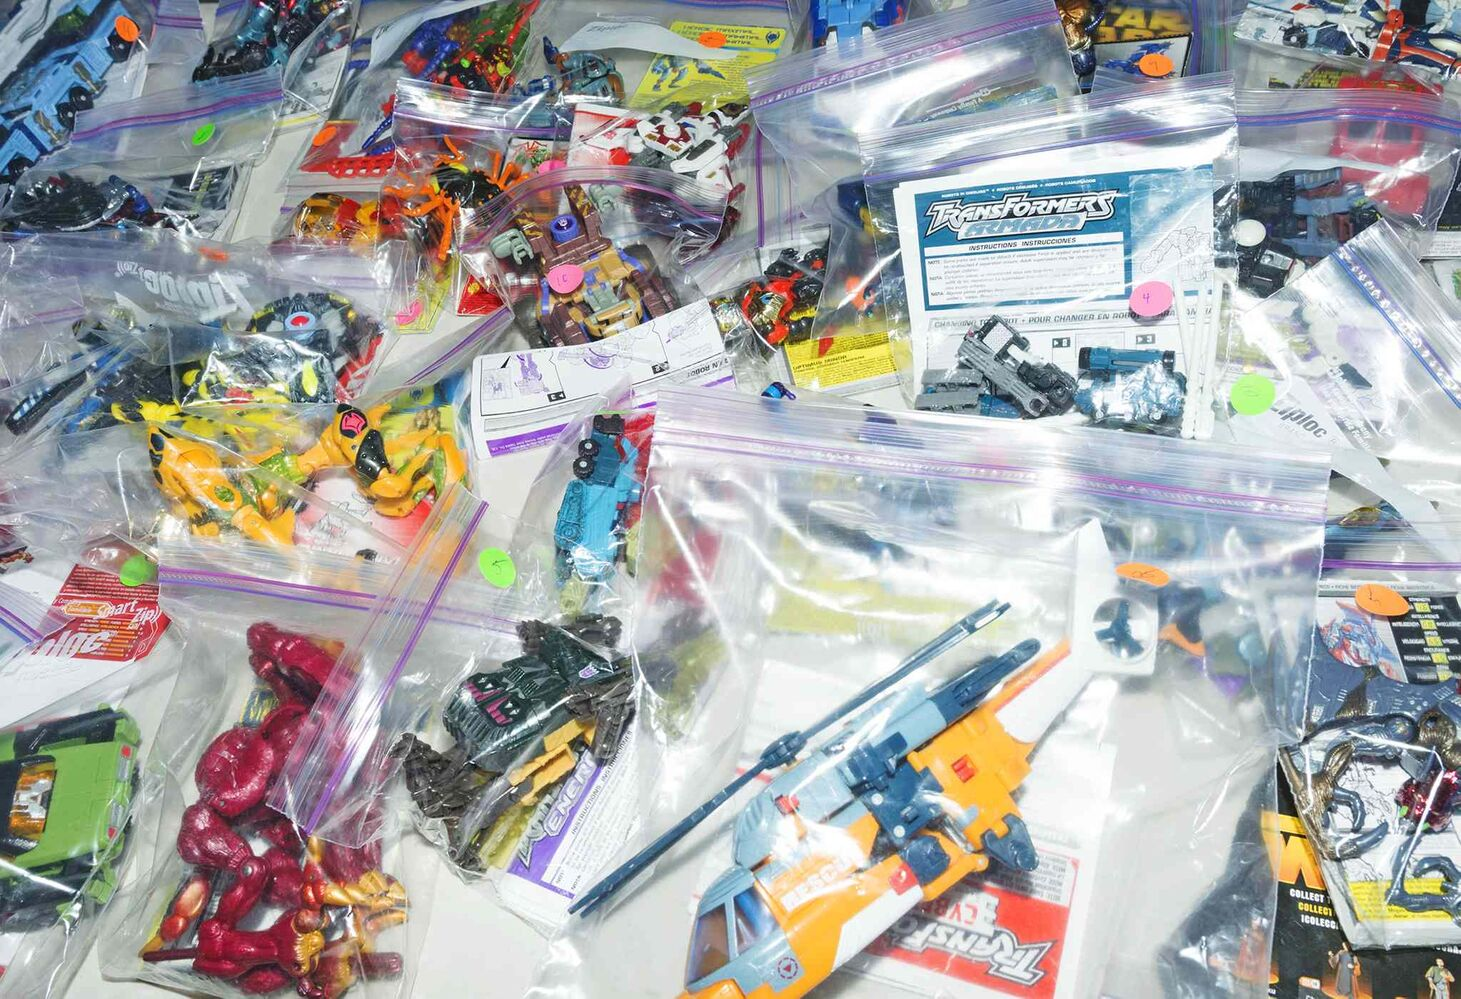 Vendors brought hundred of collectors items to Manitoba's first Transformers themed fan convention on Saturday at the Clarion Hotel.